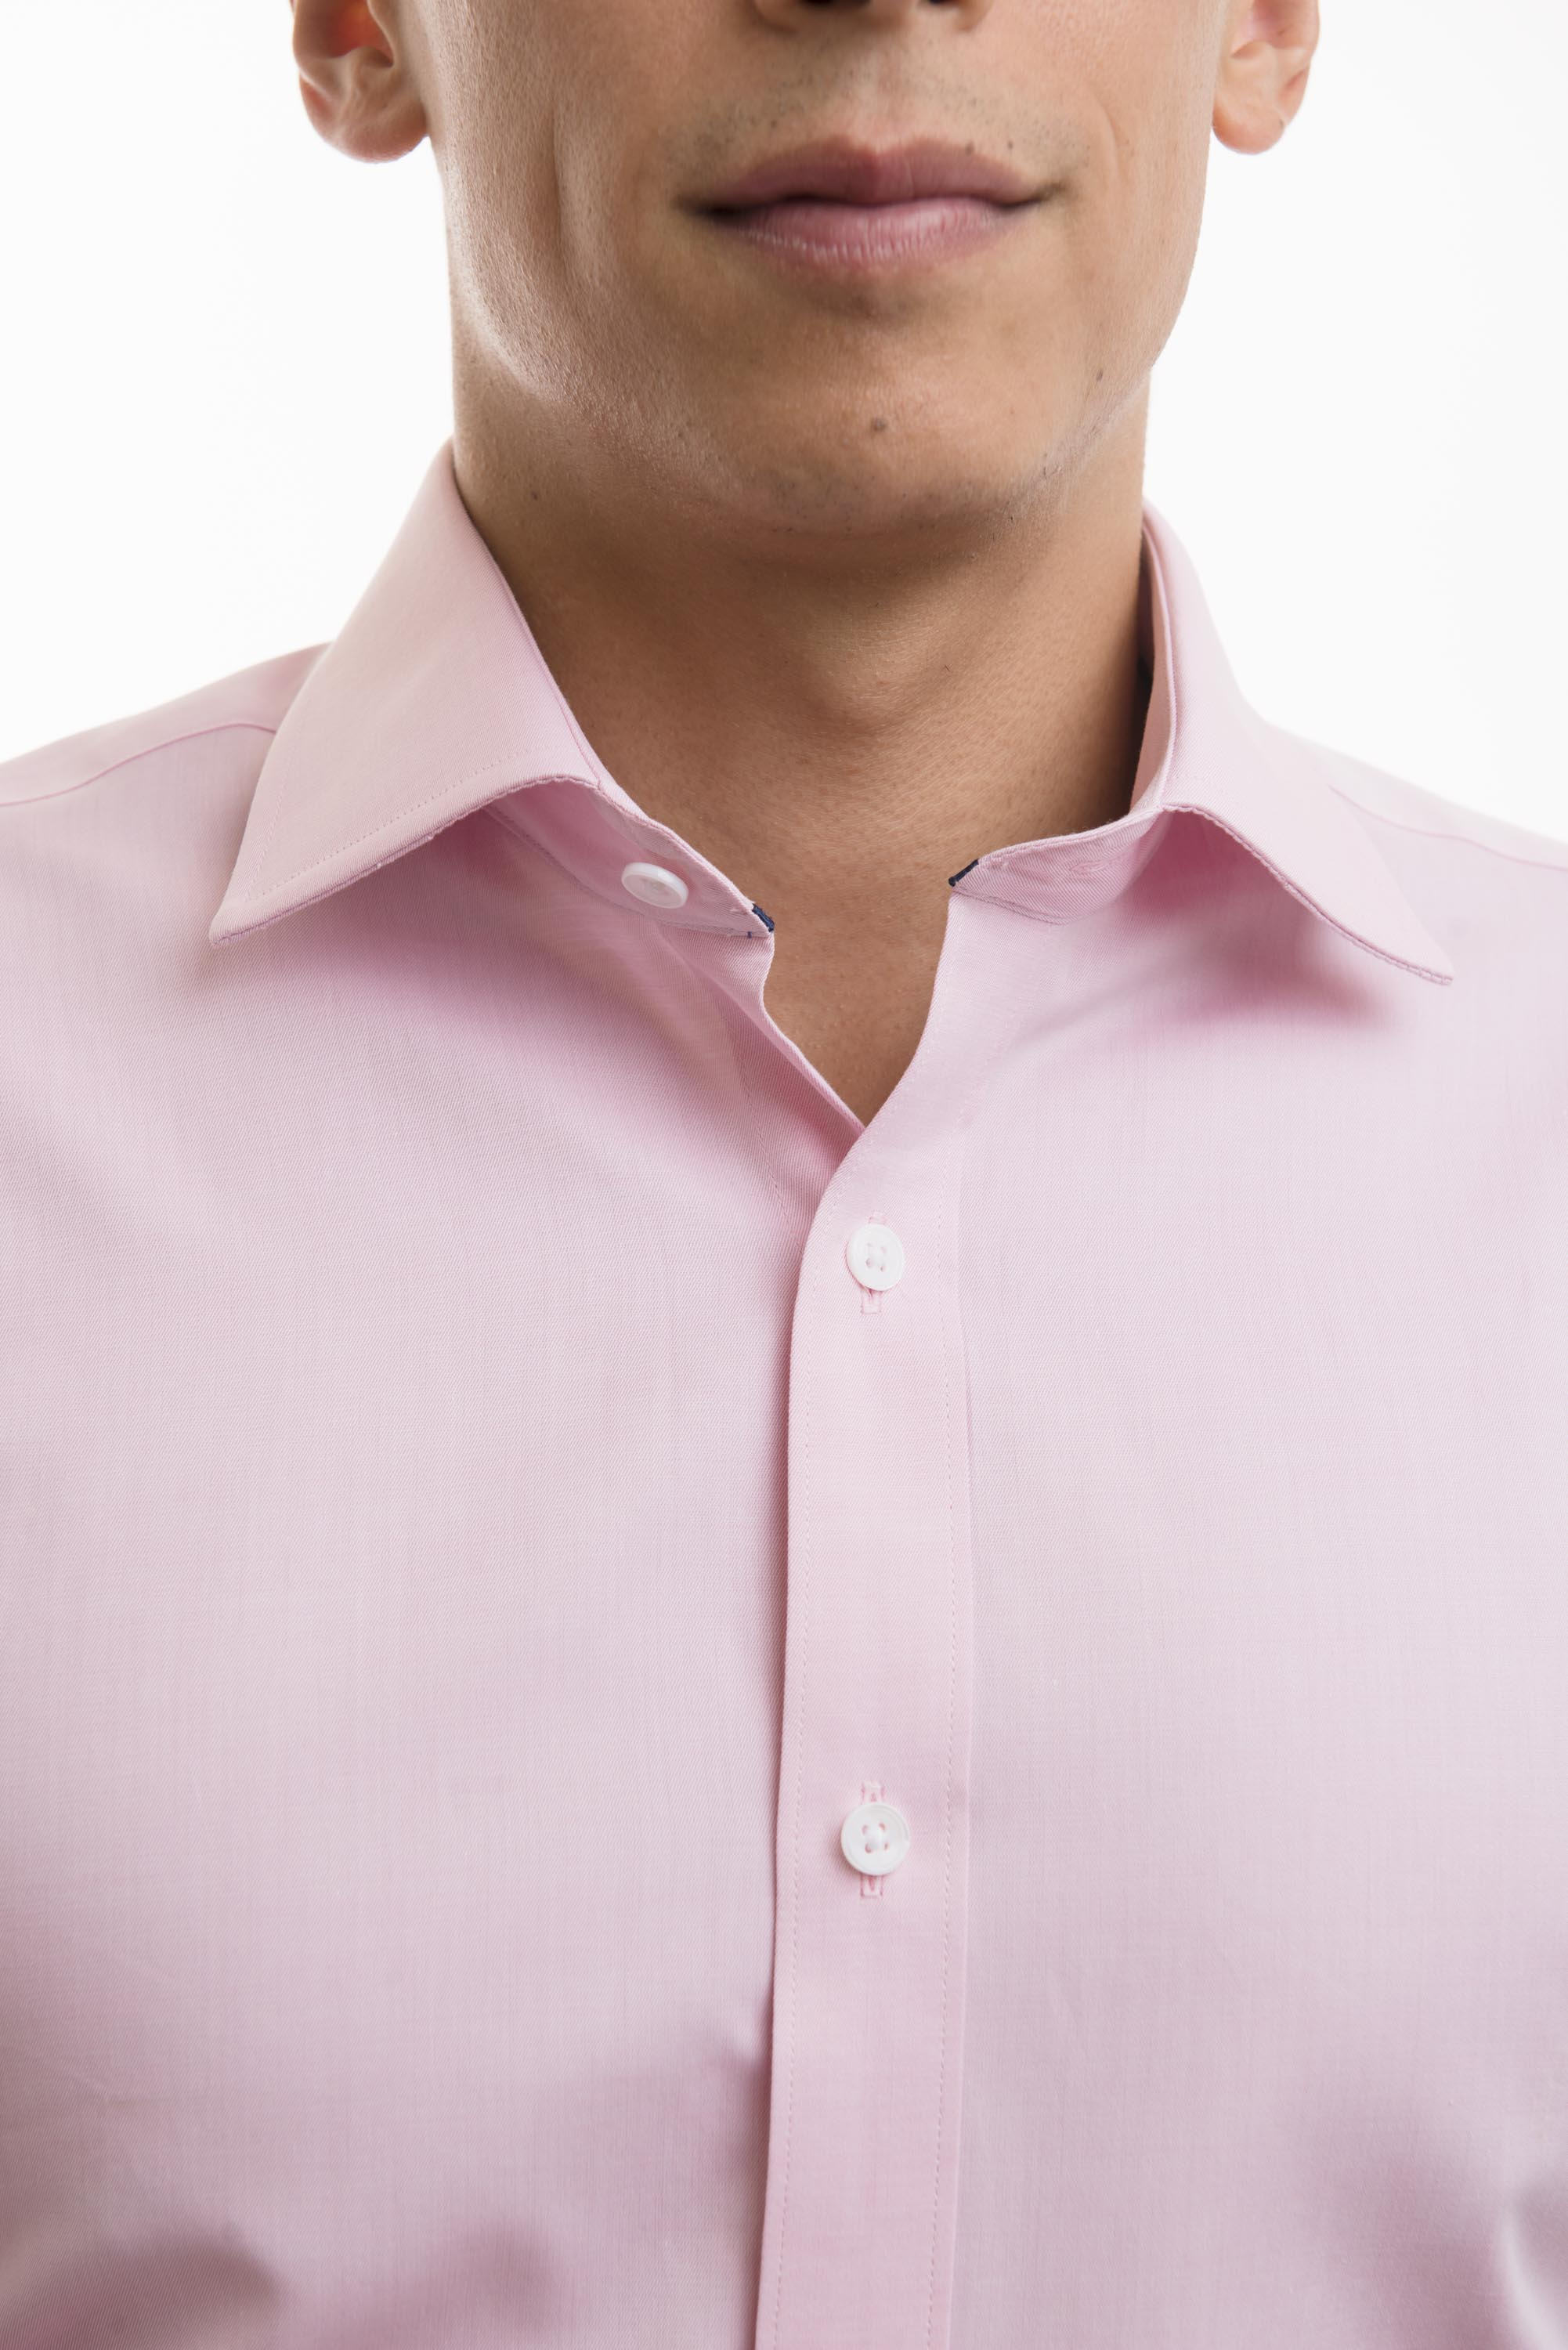 LXN Pink Semi-Spread Collar Men's Dress Shirts